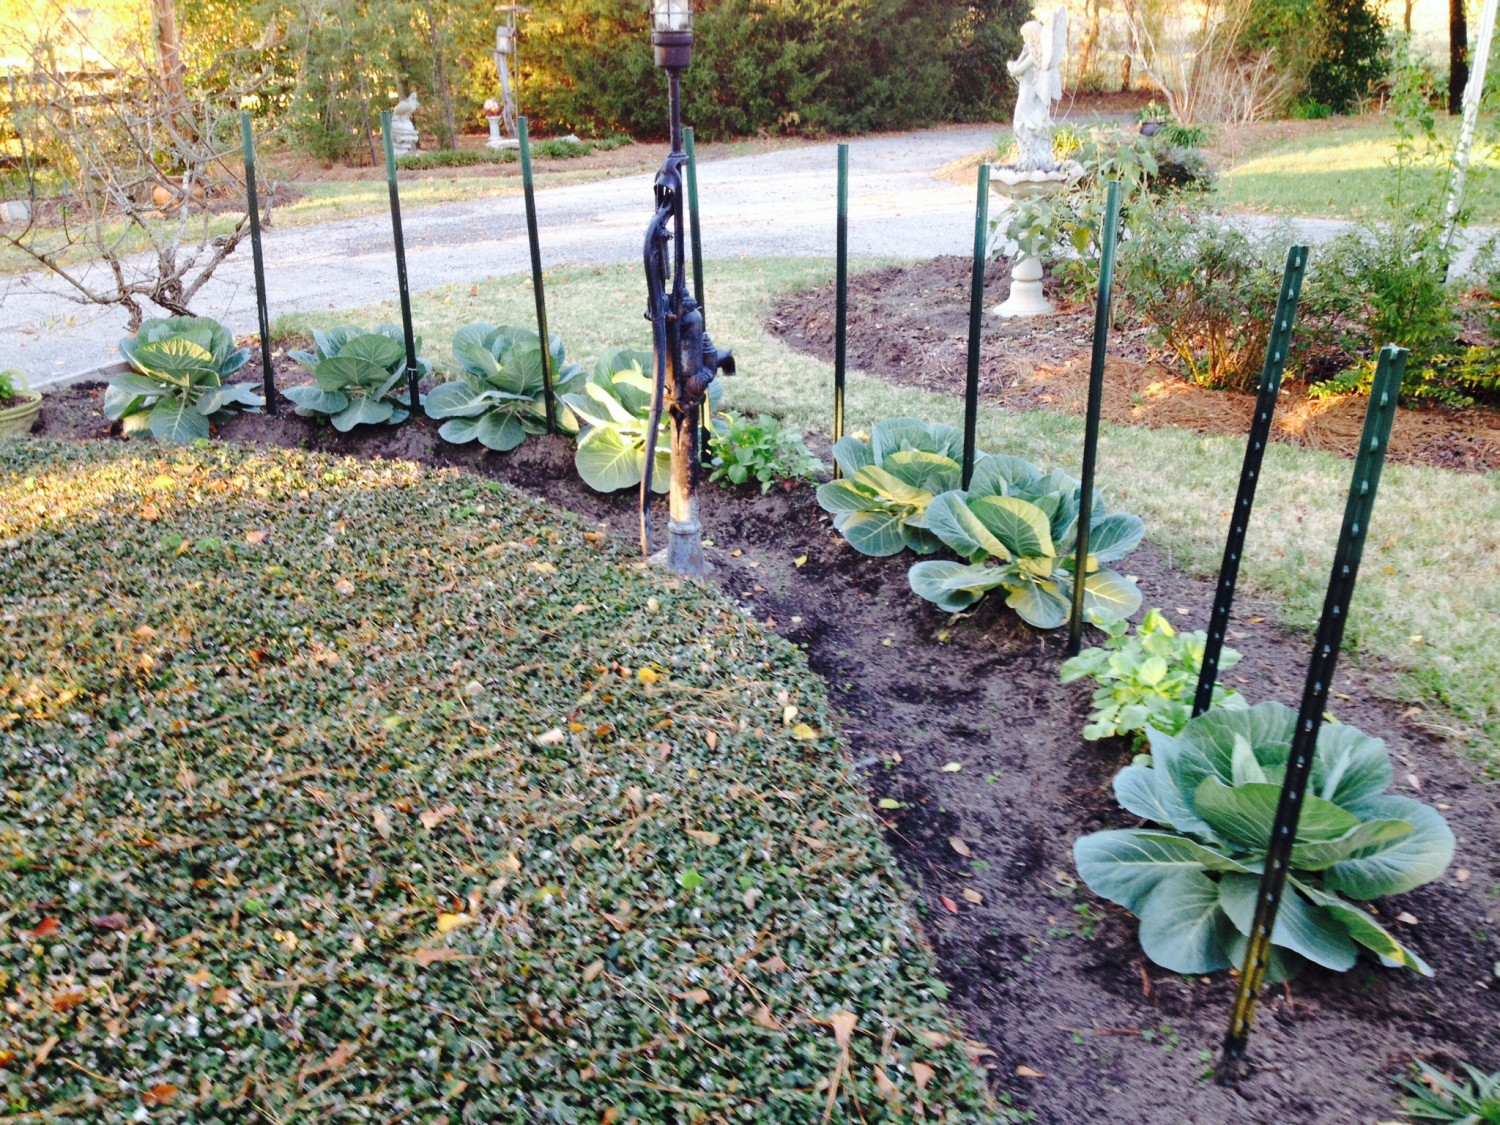 Unique East Texas Winter Garden Vegetables  Texas Forest Country Living With Licious Narrow Garden Ideas Besides Mexican Restaurants Covent Garden Furthermore Cheetah Run Busch Gardens With Astonishing  X  Garden Shed Also Palace Gardens Terrace In Addition Waikiki Gardens And Zen Garden Leatherhead As Well As Childrens Garden Play Area Additionally Laguna Vista Garden Resort From Texasforestcountrylivingcom With   Licious East Texas Winter Garden Vegetables  Texas Forest Country Living With Astonishing Narrow Garden Ideas Besides Mexican Restaurants Covent Garden Furthermore Cheetah Run Busch Gardens And Unique  X  Garden Shed Also Palace Gardens Terrace In Addition Waikiki Gardens From Texasforestcountrylivingcom